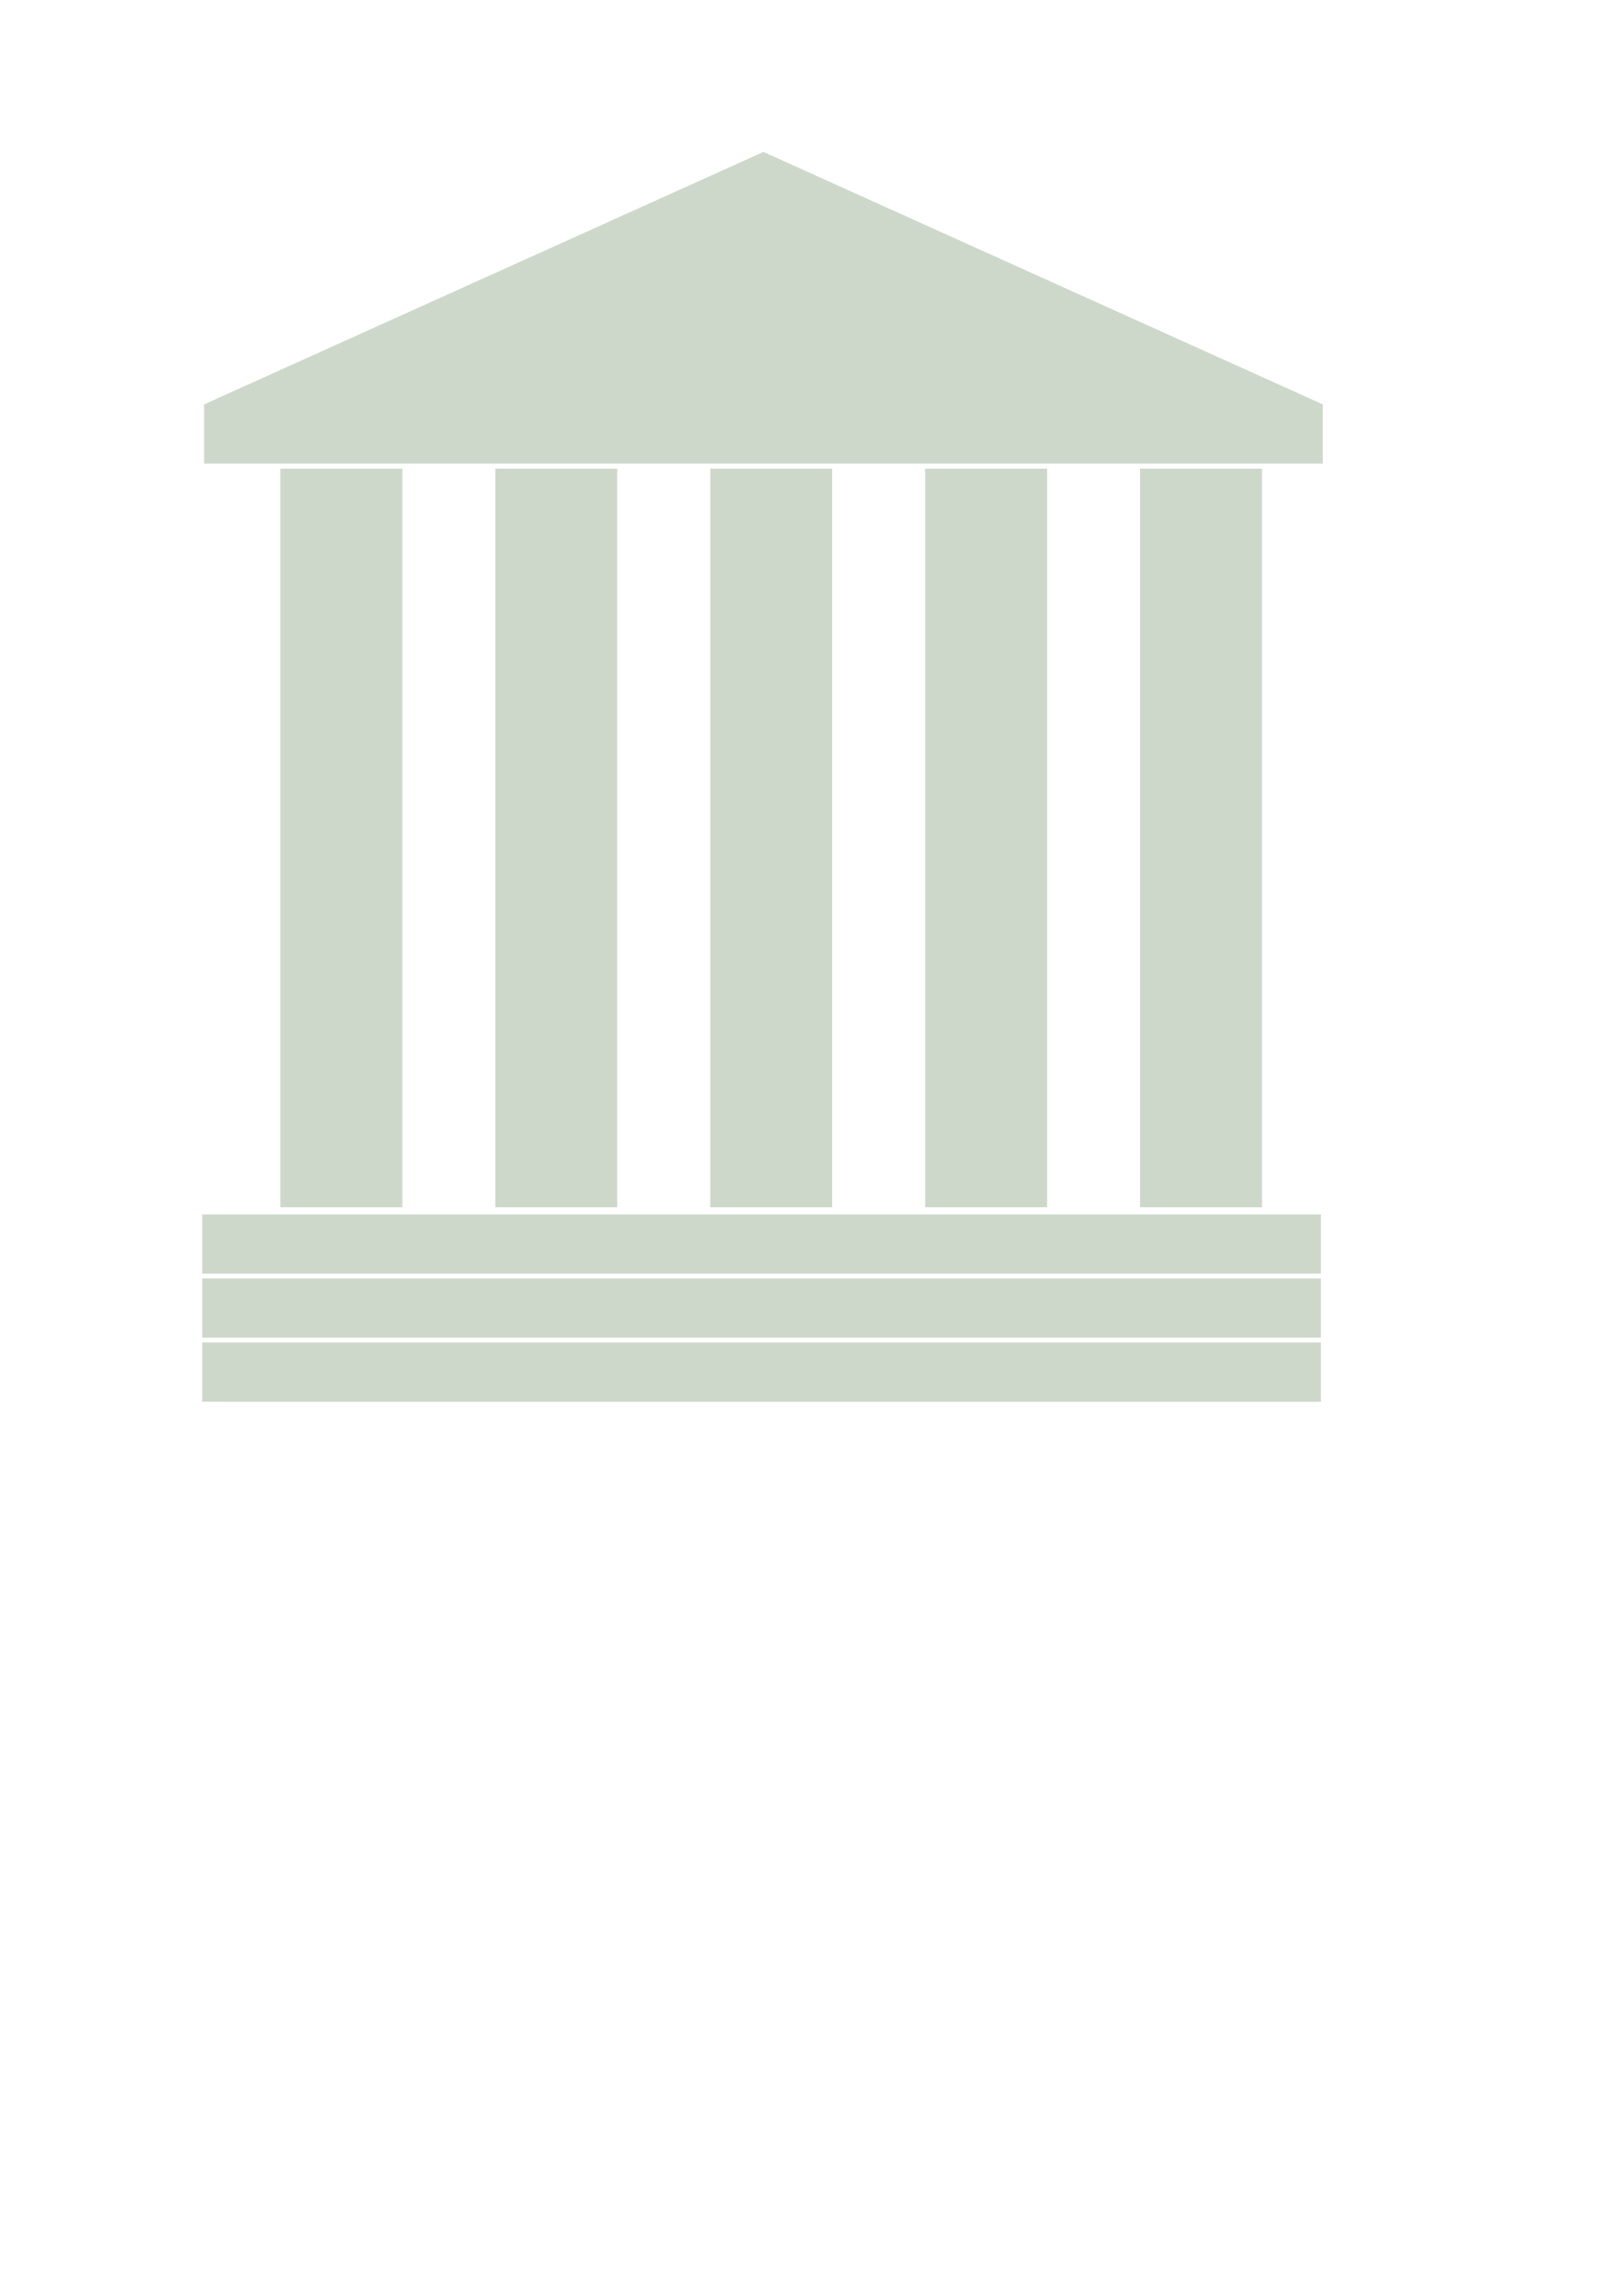 courthouse clipart institutional